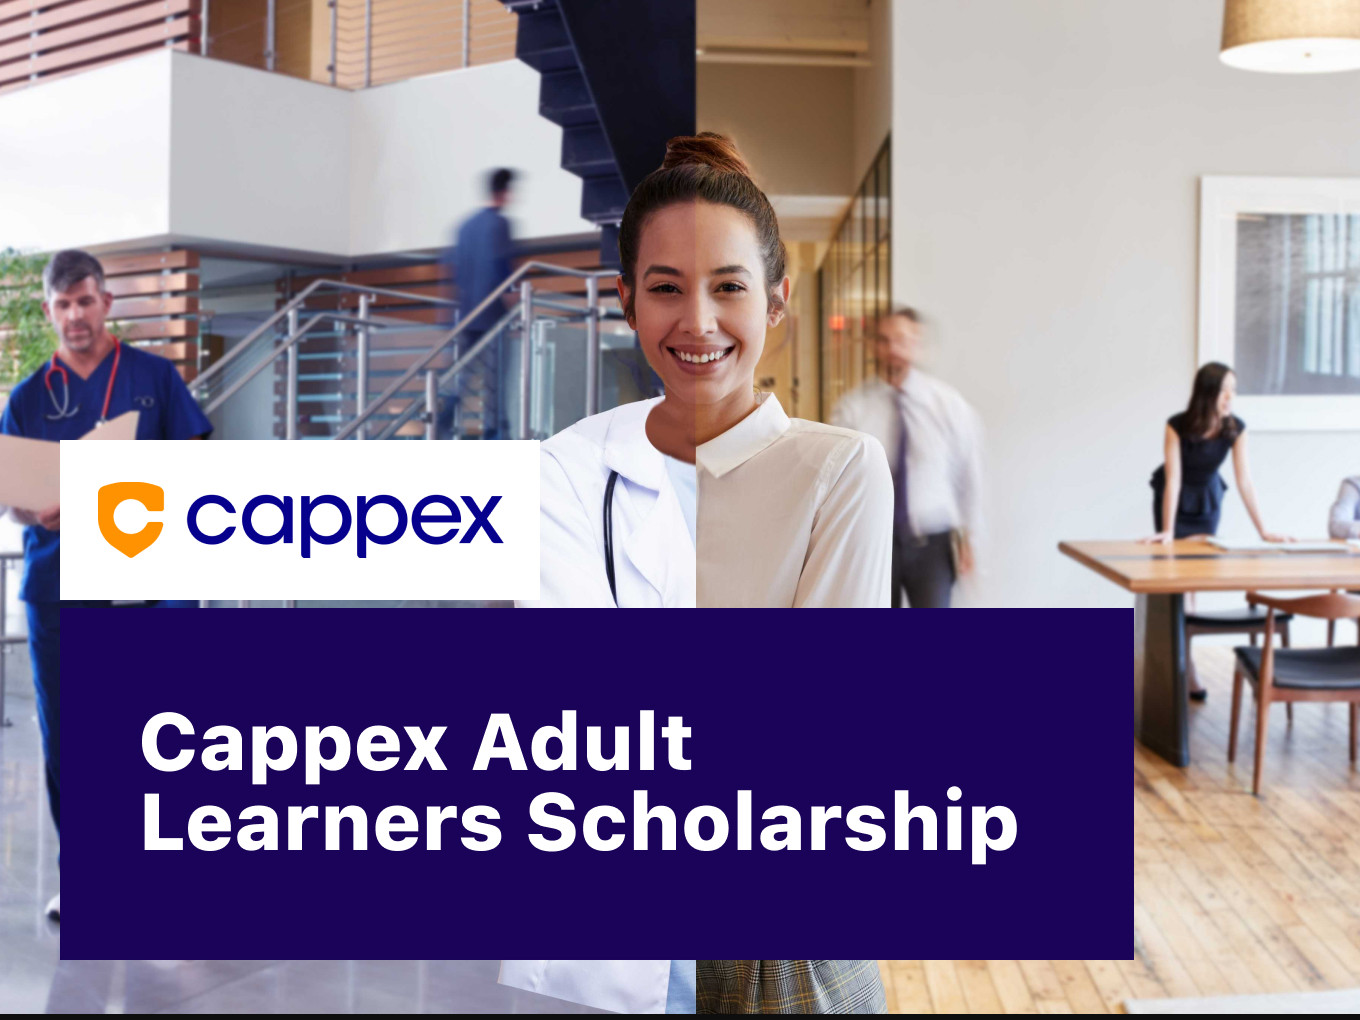 Cappex Adult Learners $1000 Scholarship